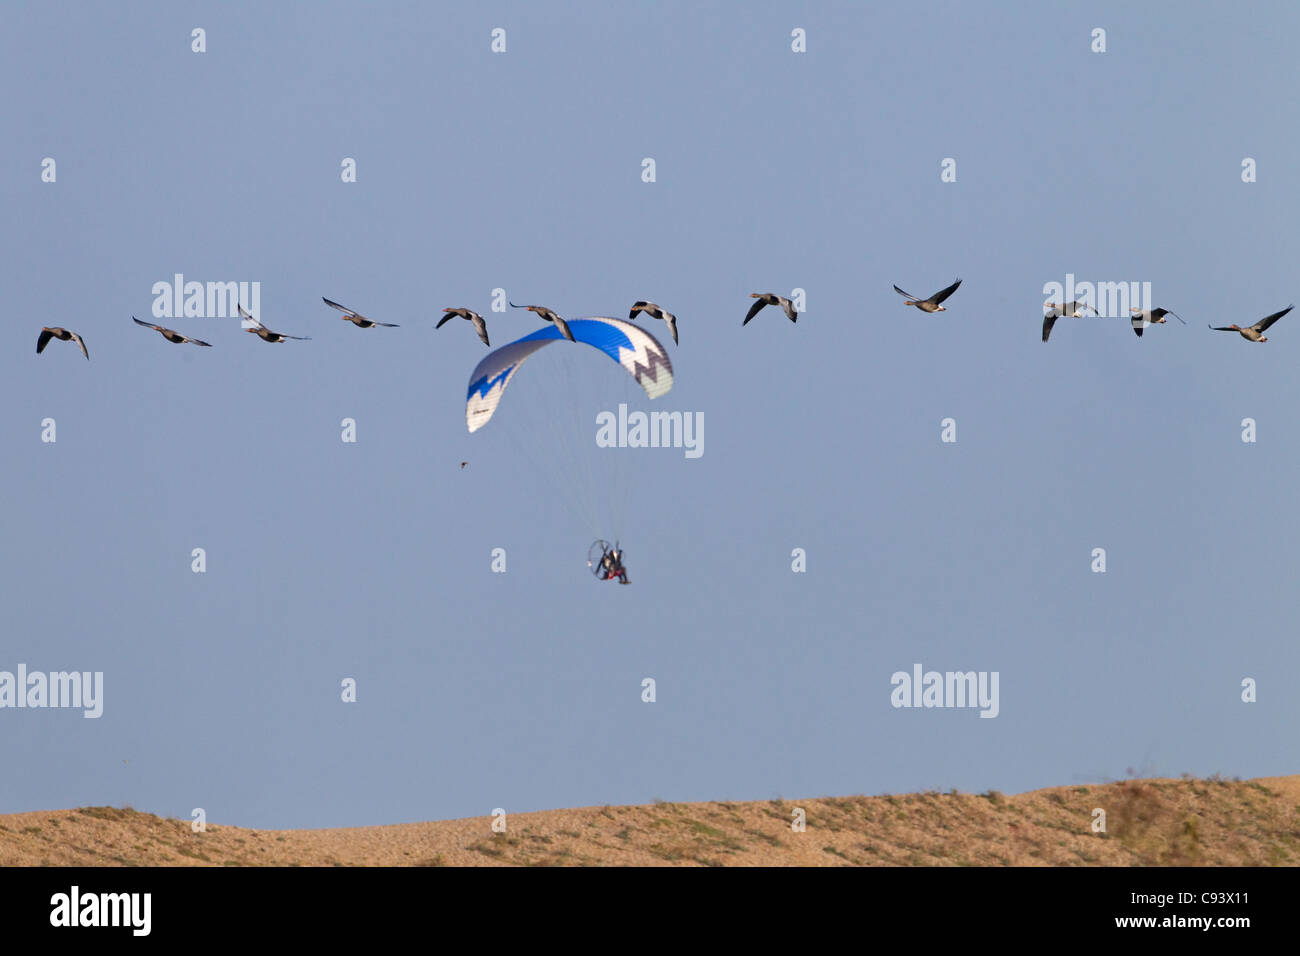 Flying geese and Paraglider over Cley bank Norfolk UK - Stock Image